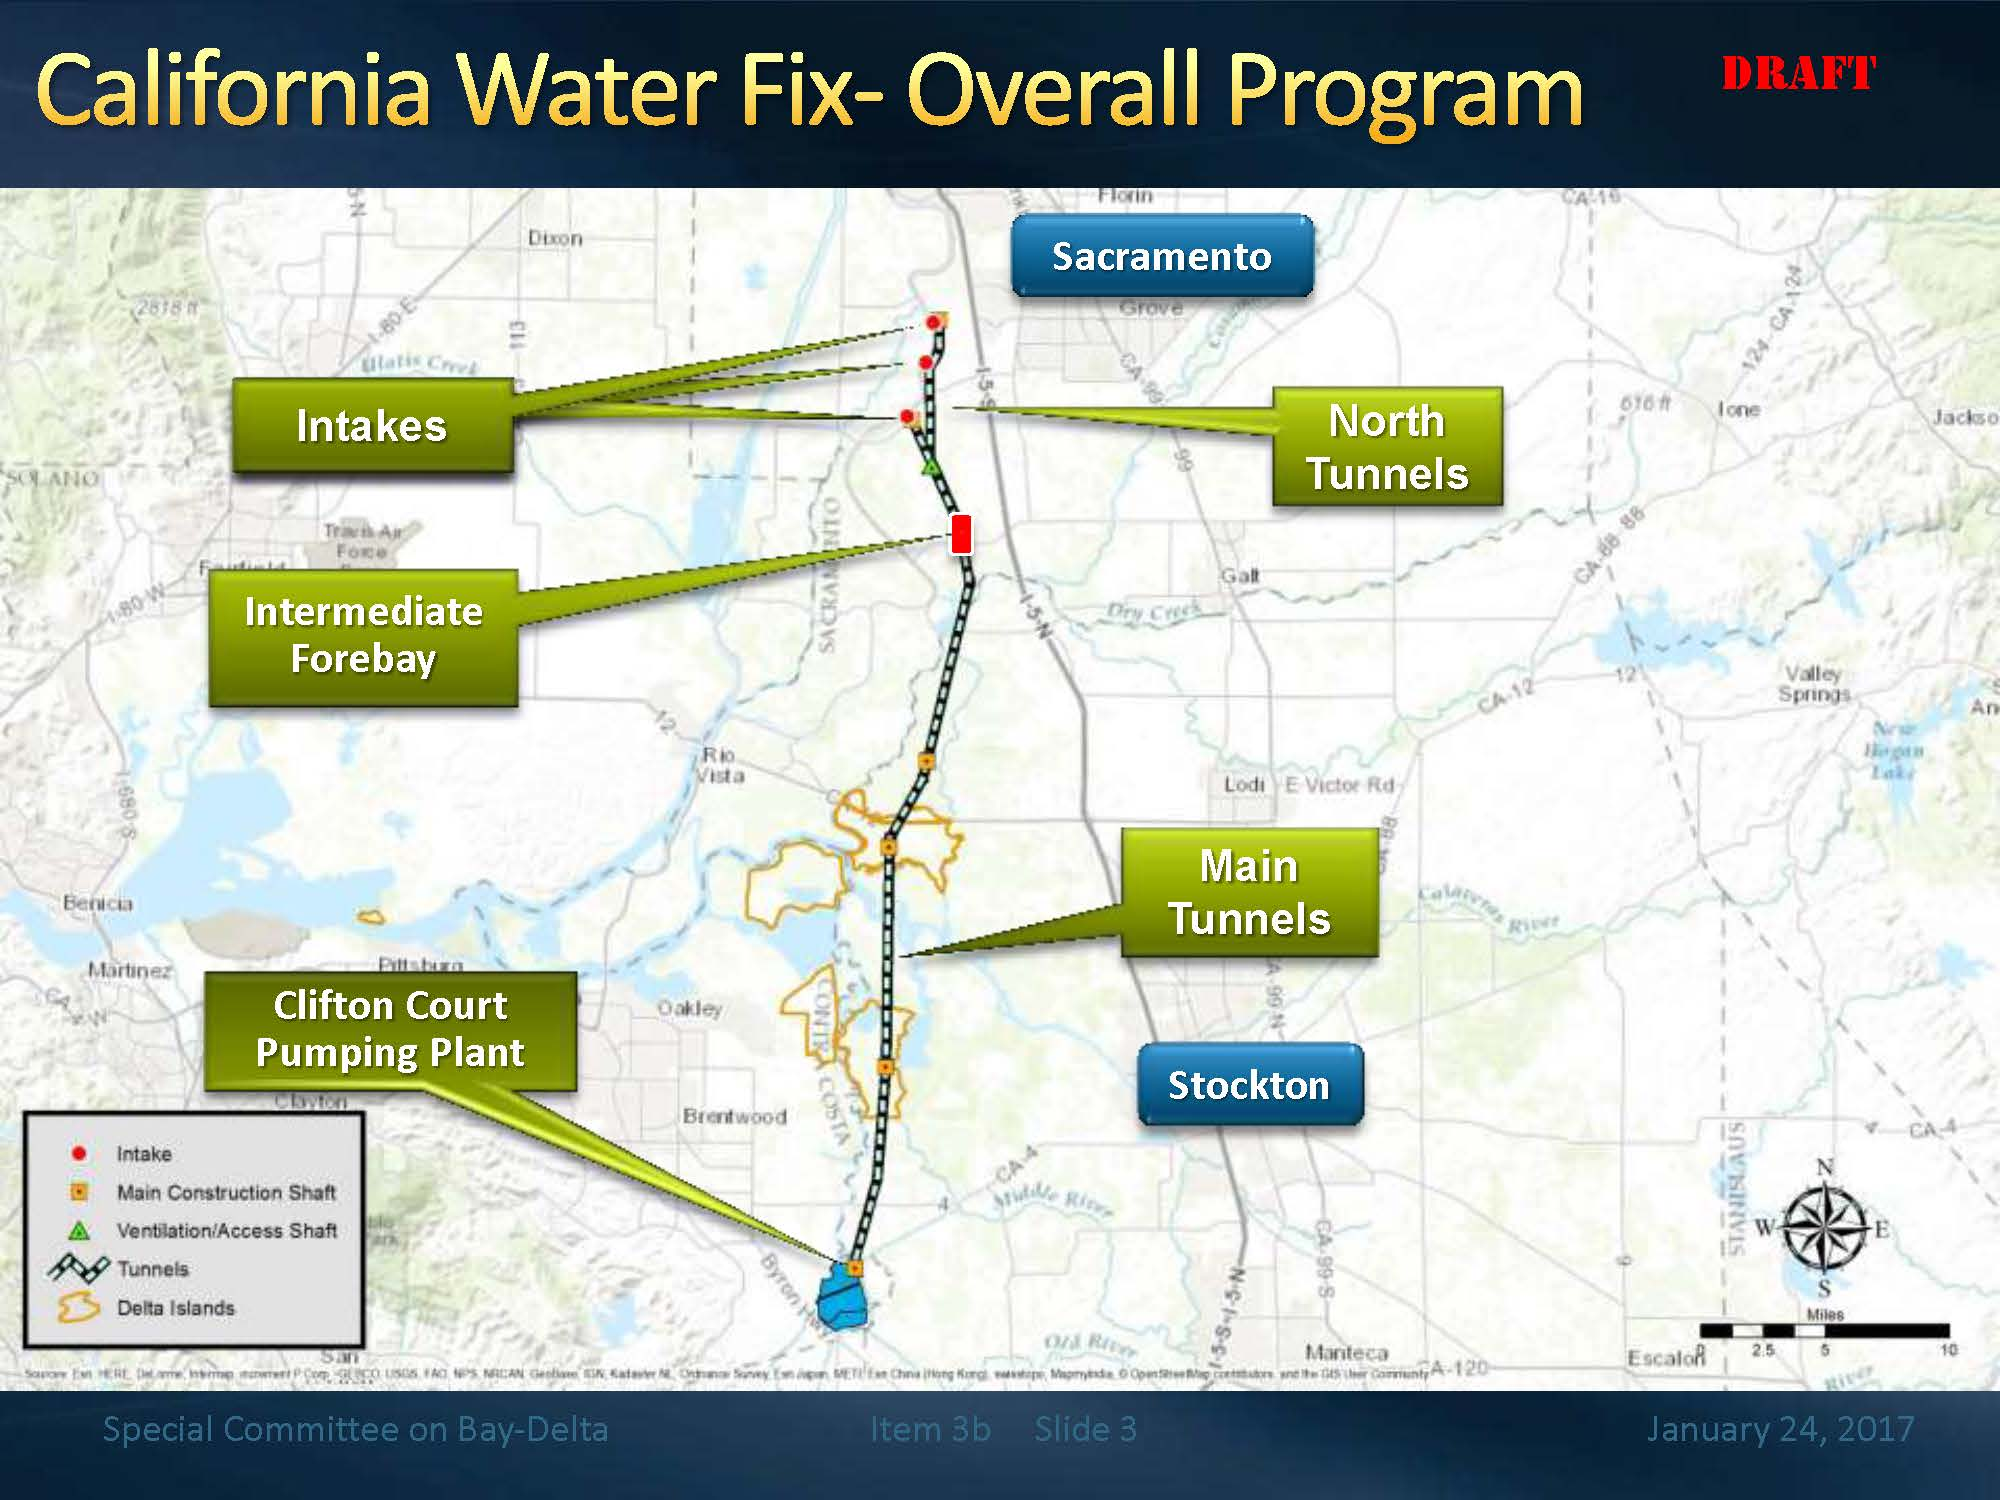 Metropolitan special committee on the bay delta project the infrastructure for the california water fix stretches about 38 miles from the intakes on the sacramento river to clifton court geenschuldenfo Image collections